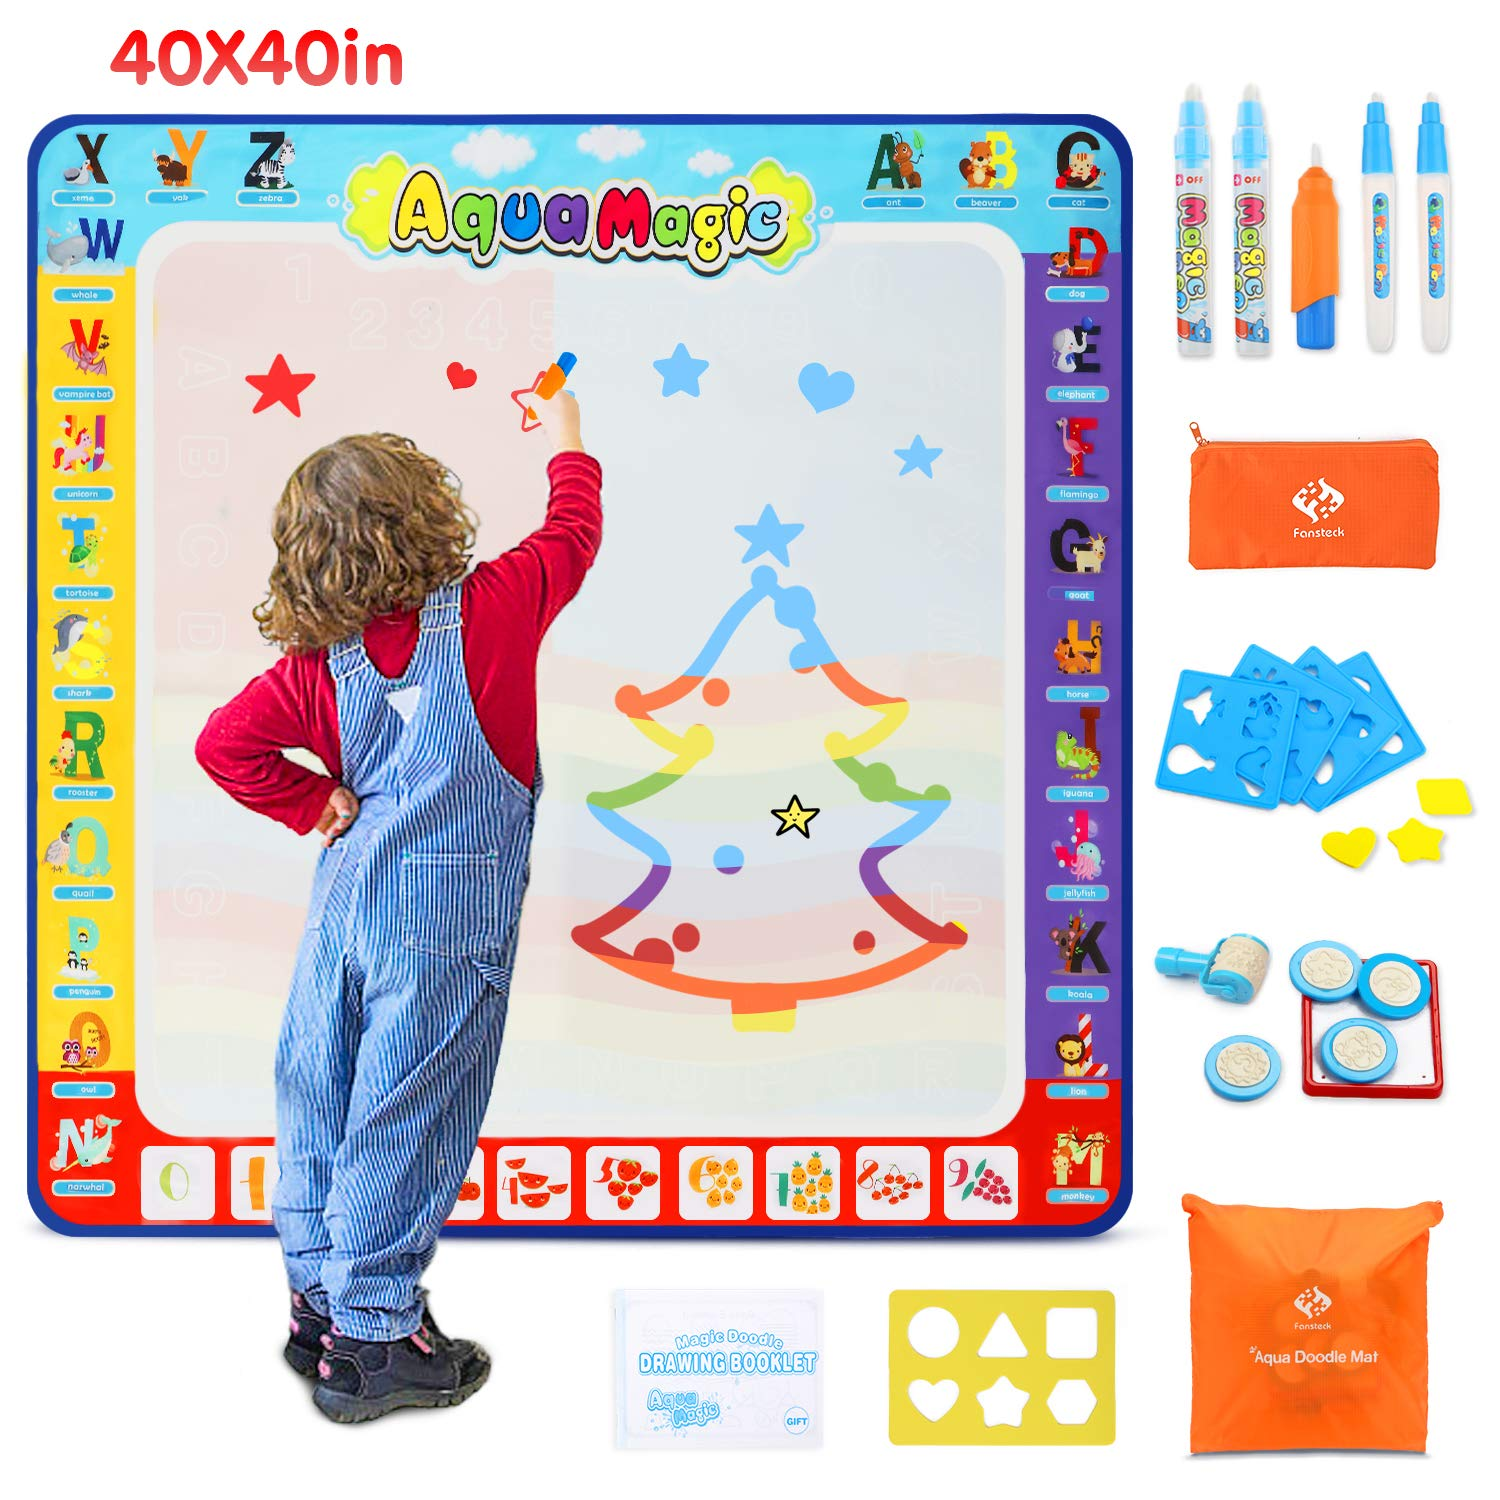 Fansteck Water Doodle Mat, Large Water Drawing Mat 40X40 inch, No Mess Aqua Magic Doodle Mat with 24 Accessories, Colorful Educational Toy and Ideal Gift for Toddlers, Boys, Girls Age of 2 3 4 5 6 7 8